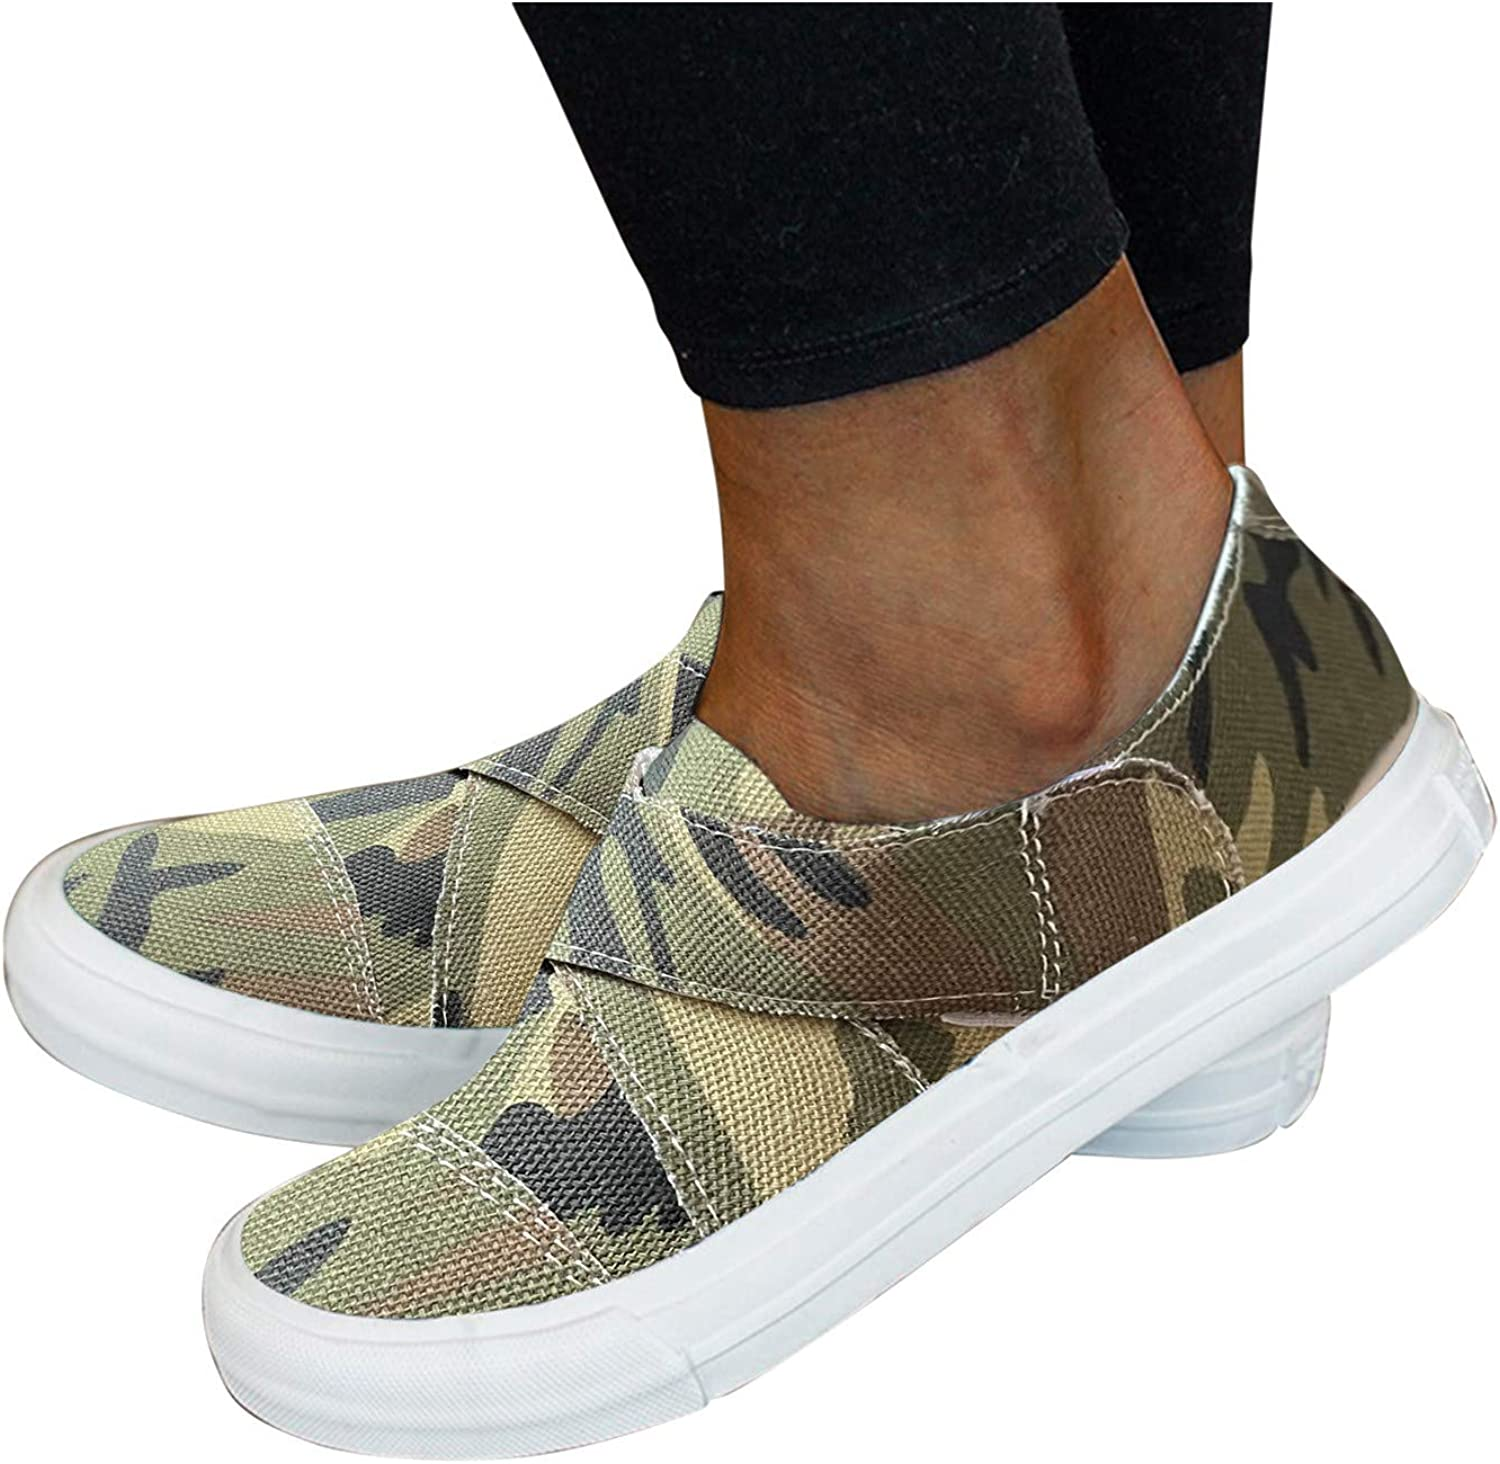 Niceast Women's Walking Shoes,Fashion Printed Canvas Flat Shoes Casual Slip on Loafers Comfy Lightweight Workout Shoes